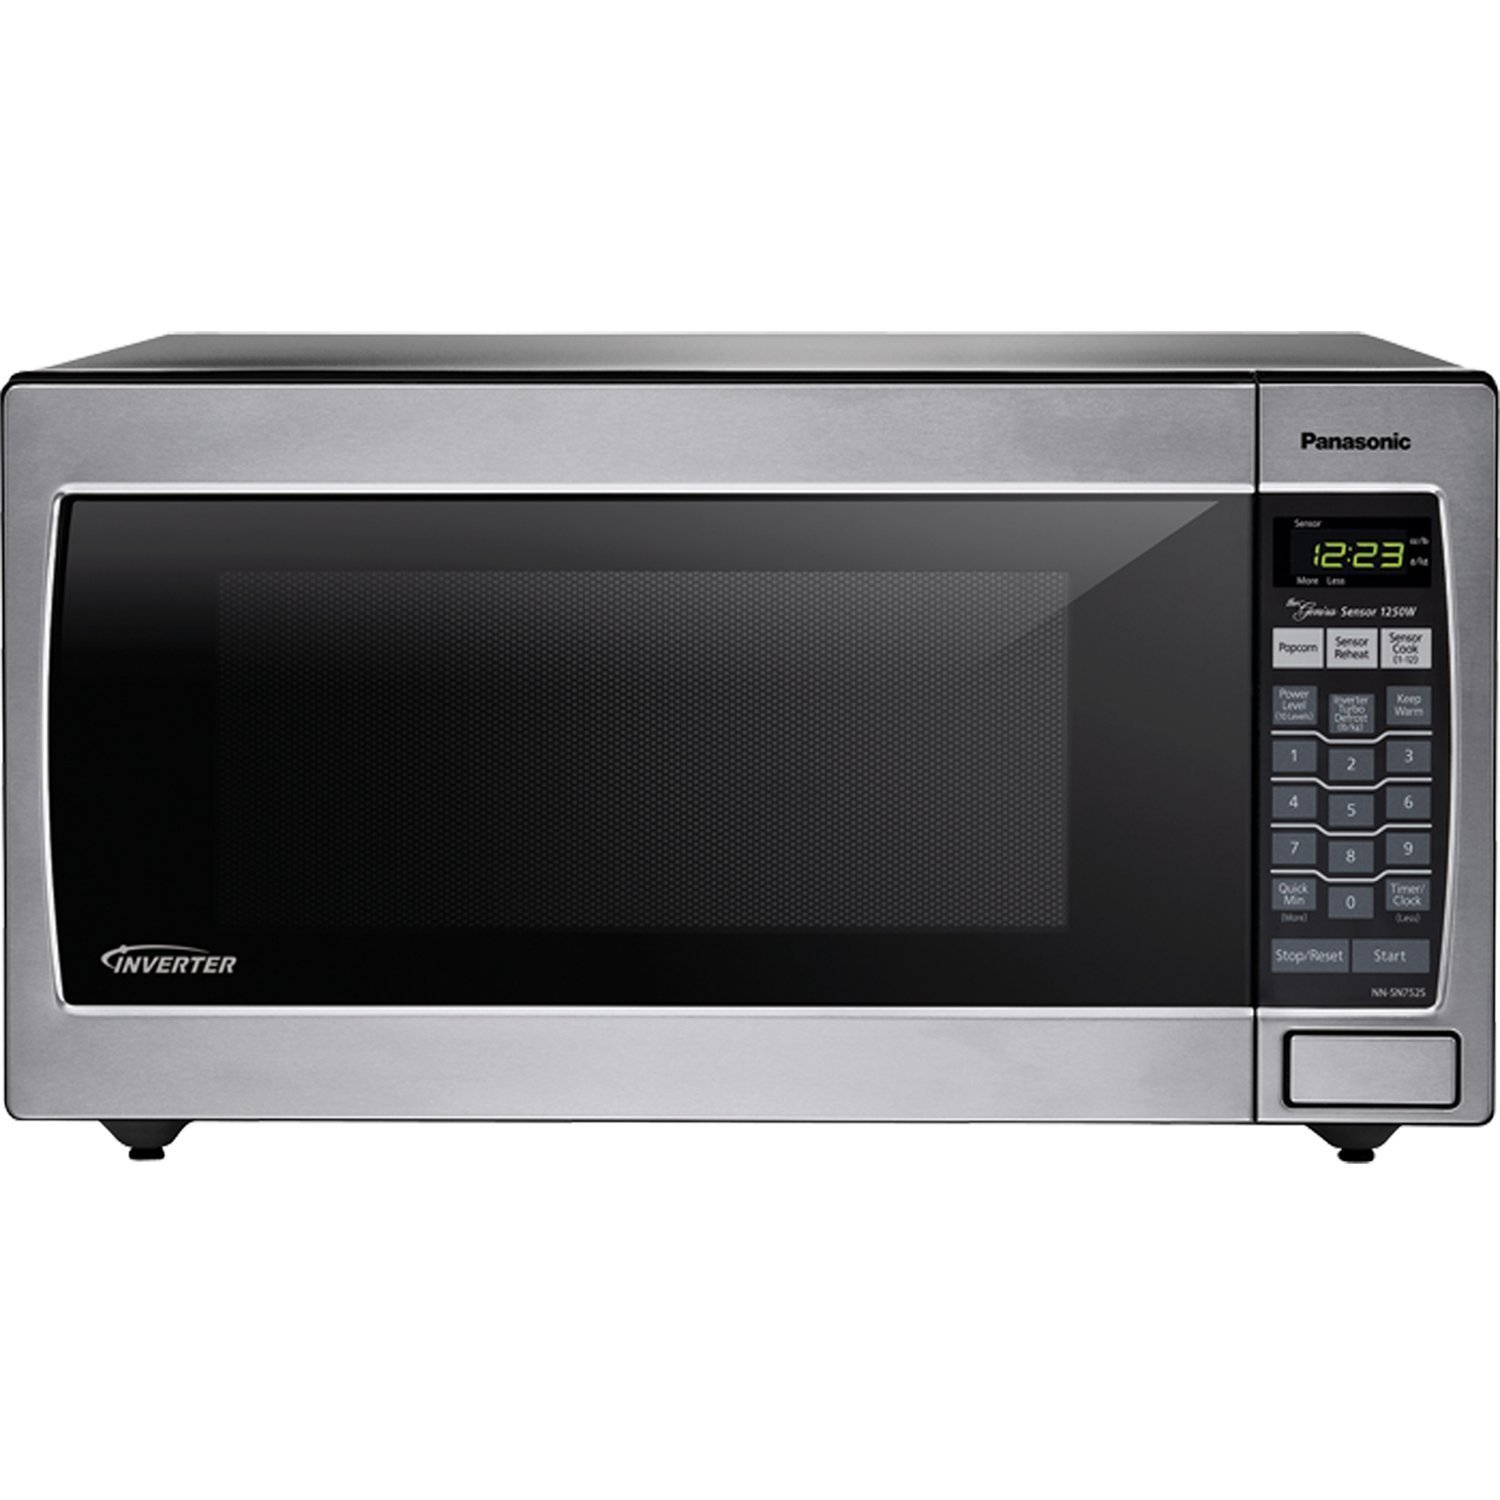 panasonic nn sn752s stainless 1250w 1 6 cu ft countertop built in microwave with inverter technology